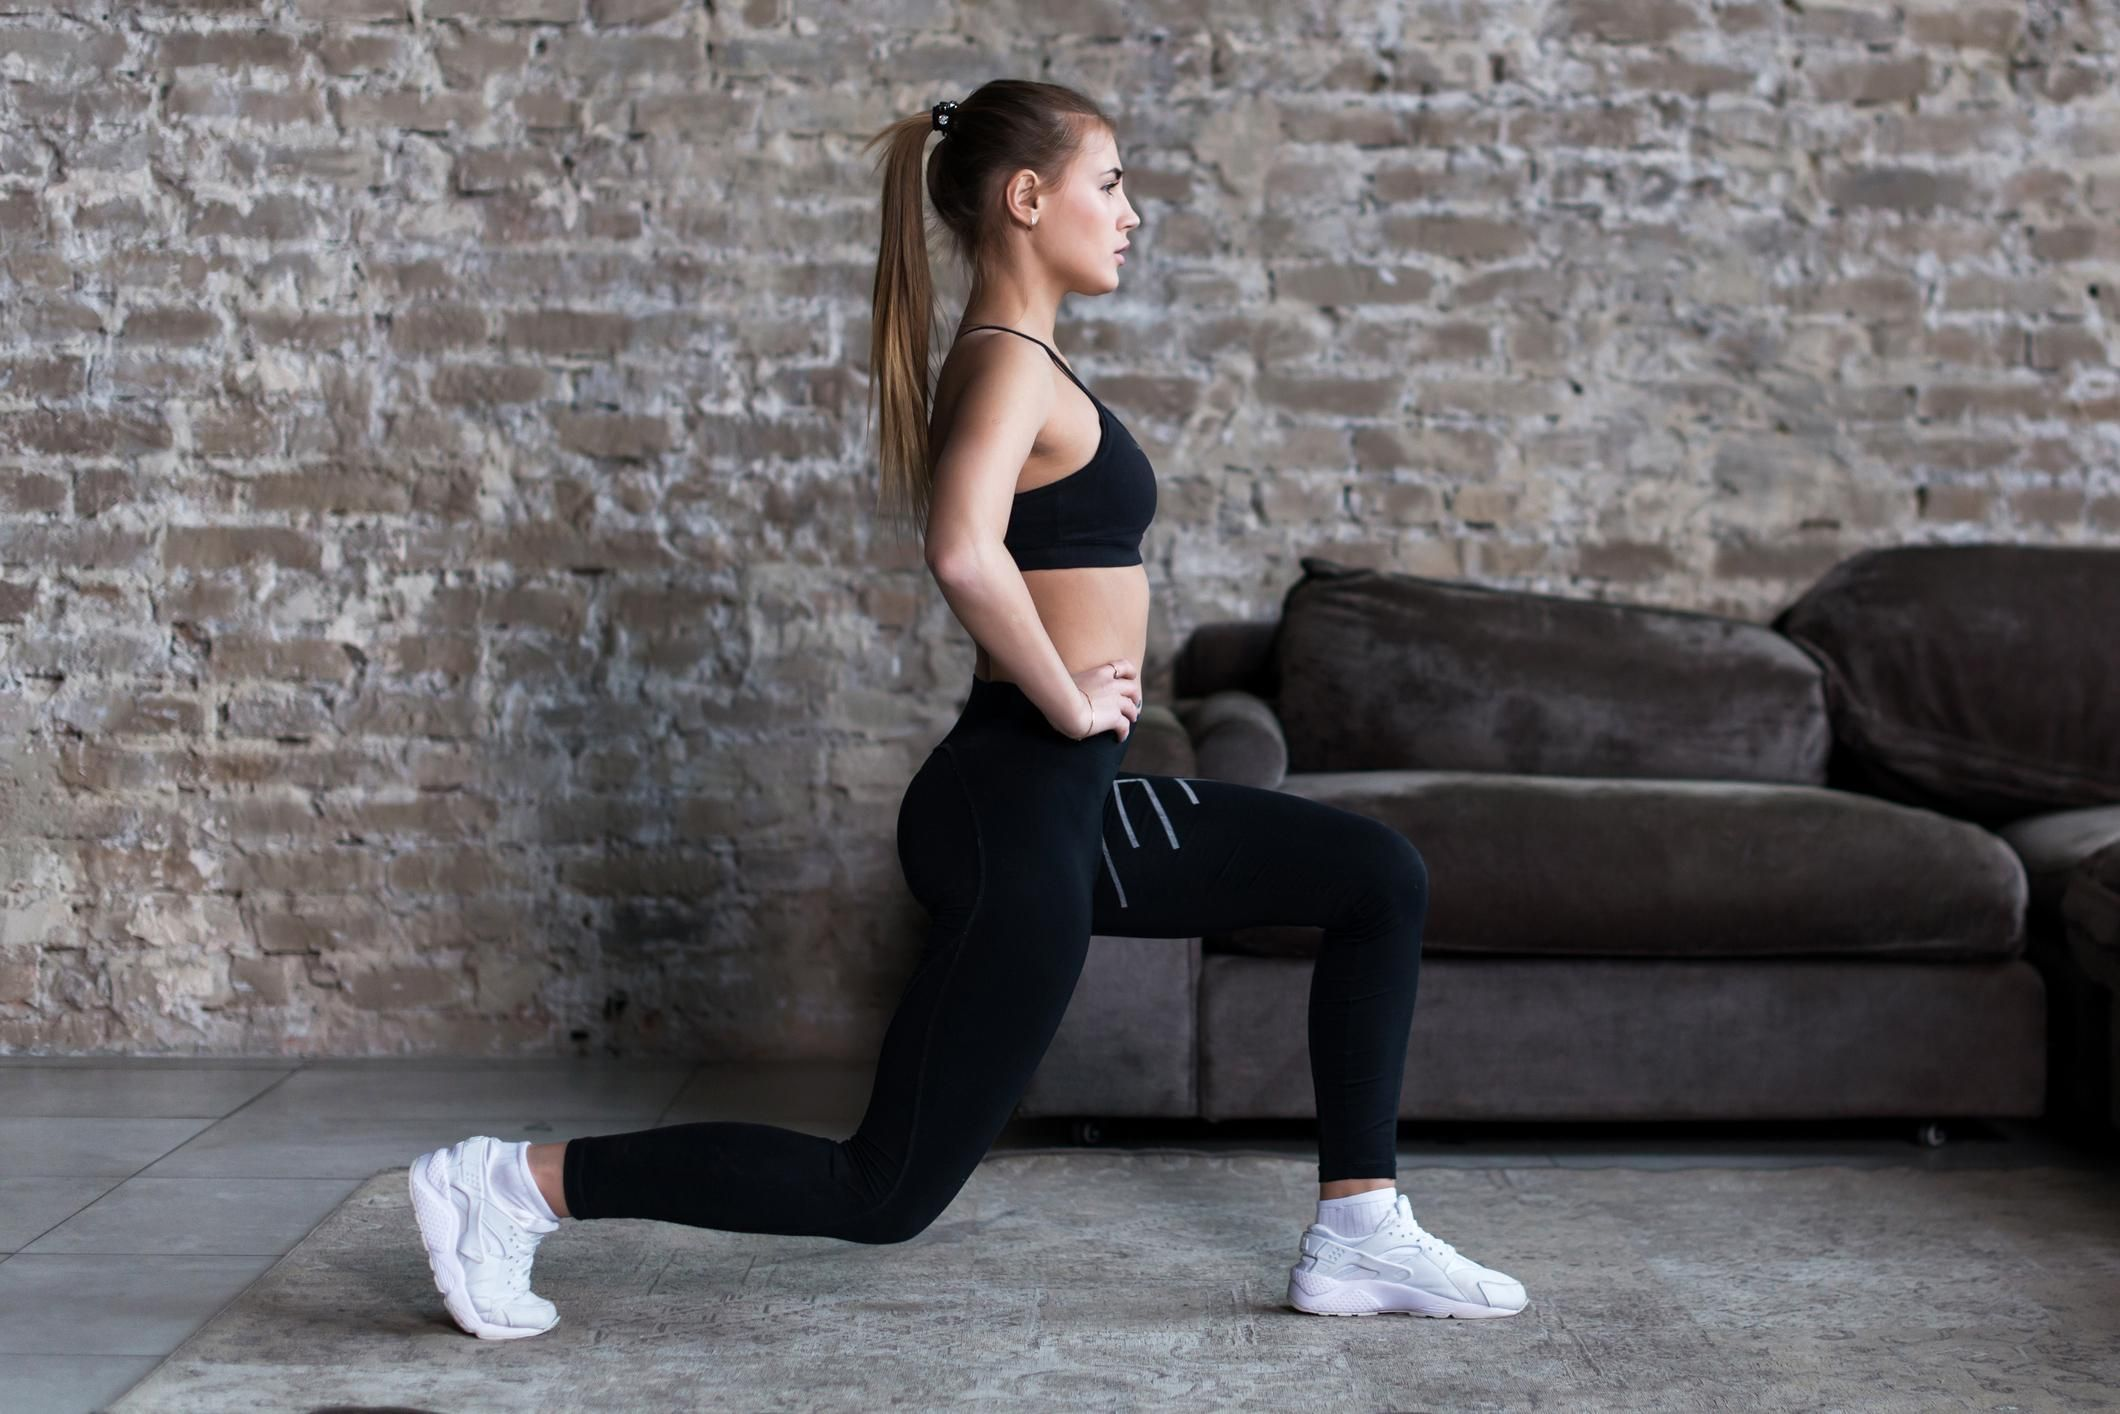 Comment affiner ses jambes   Exercices de musculation des jambes -  Doctissimo d1e5ce7e179